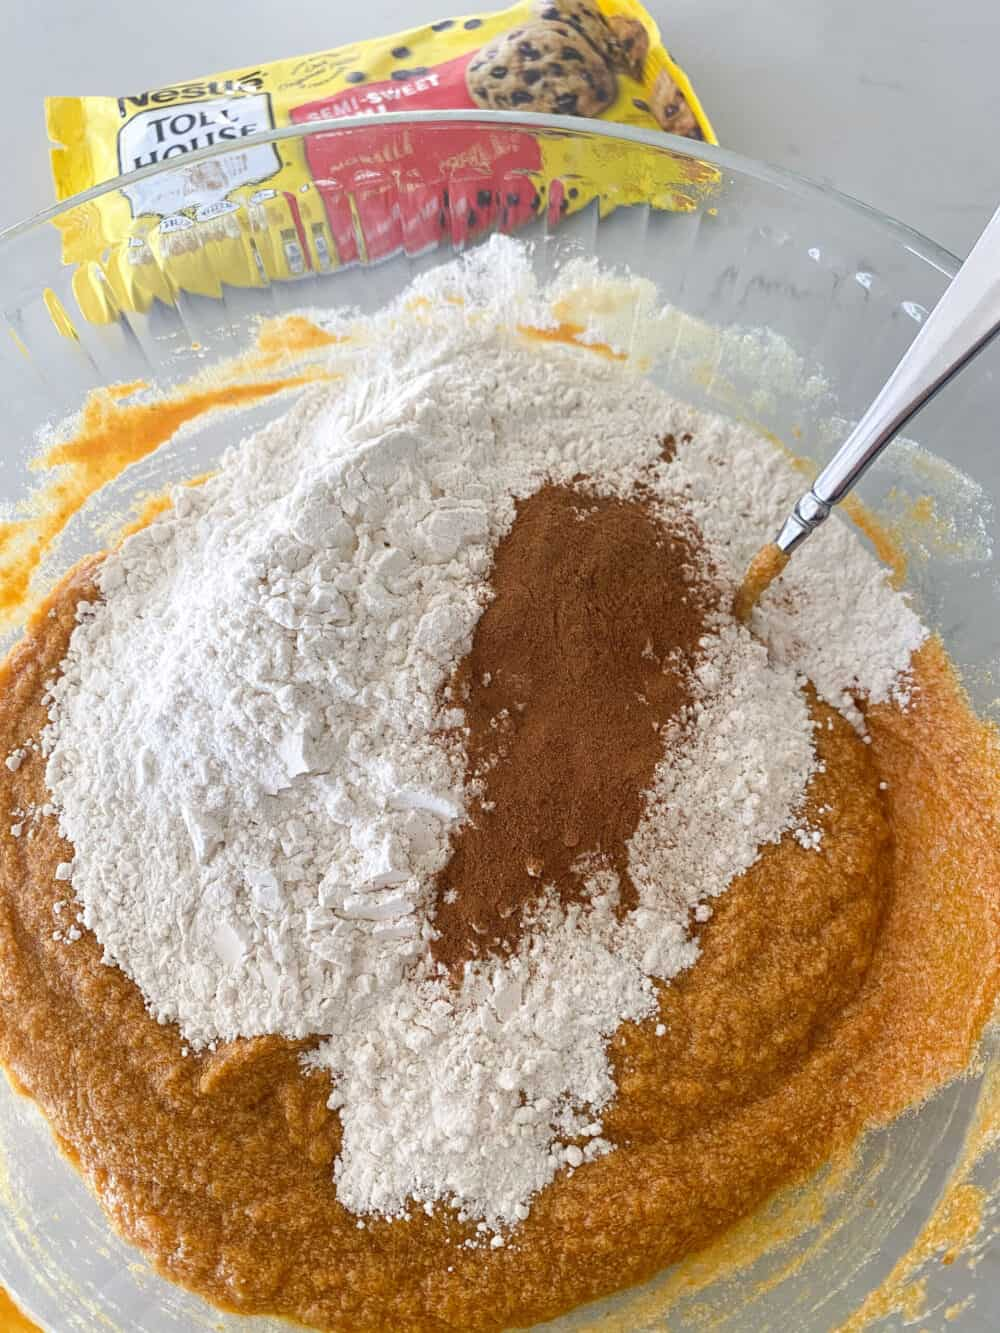 dry ingredients added to mixing bowl